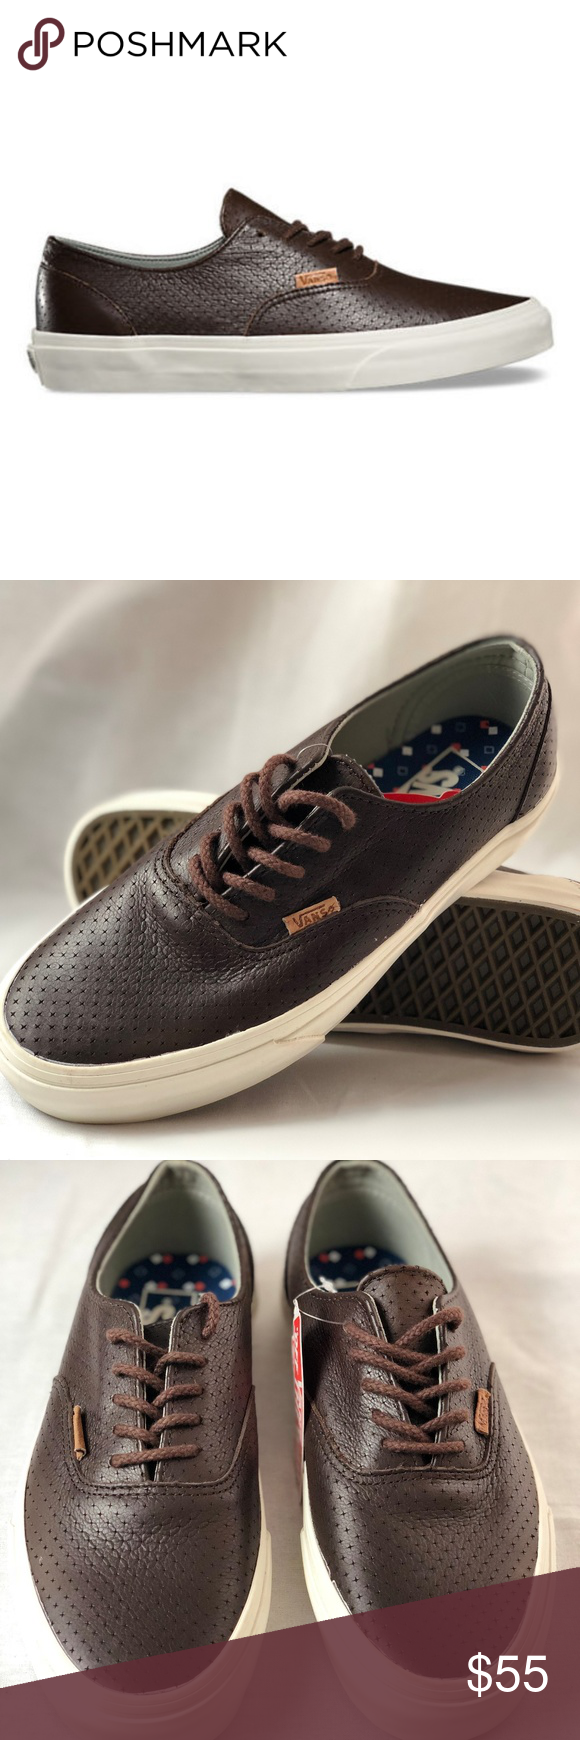 cc383d1261 VANS Era Decon Leather Emboss- Seal Brown. Condition  New with box. Size   Women s 8.5